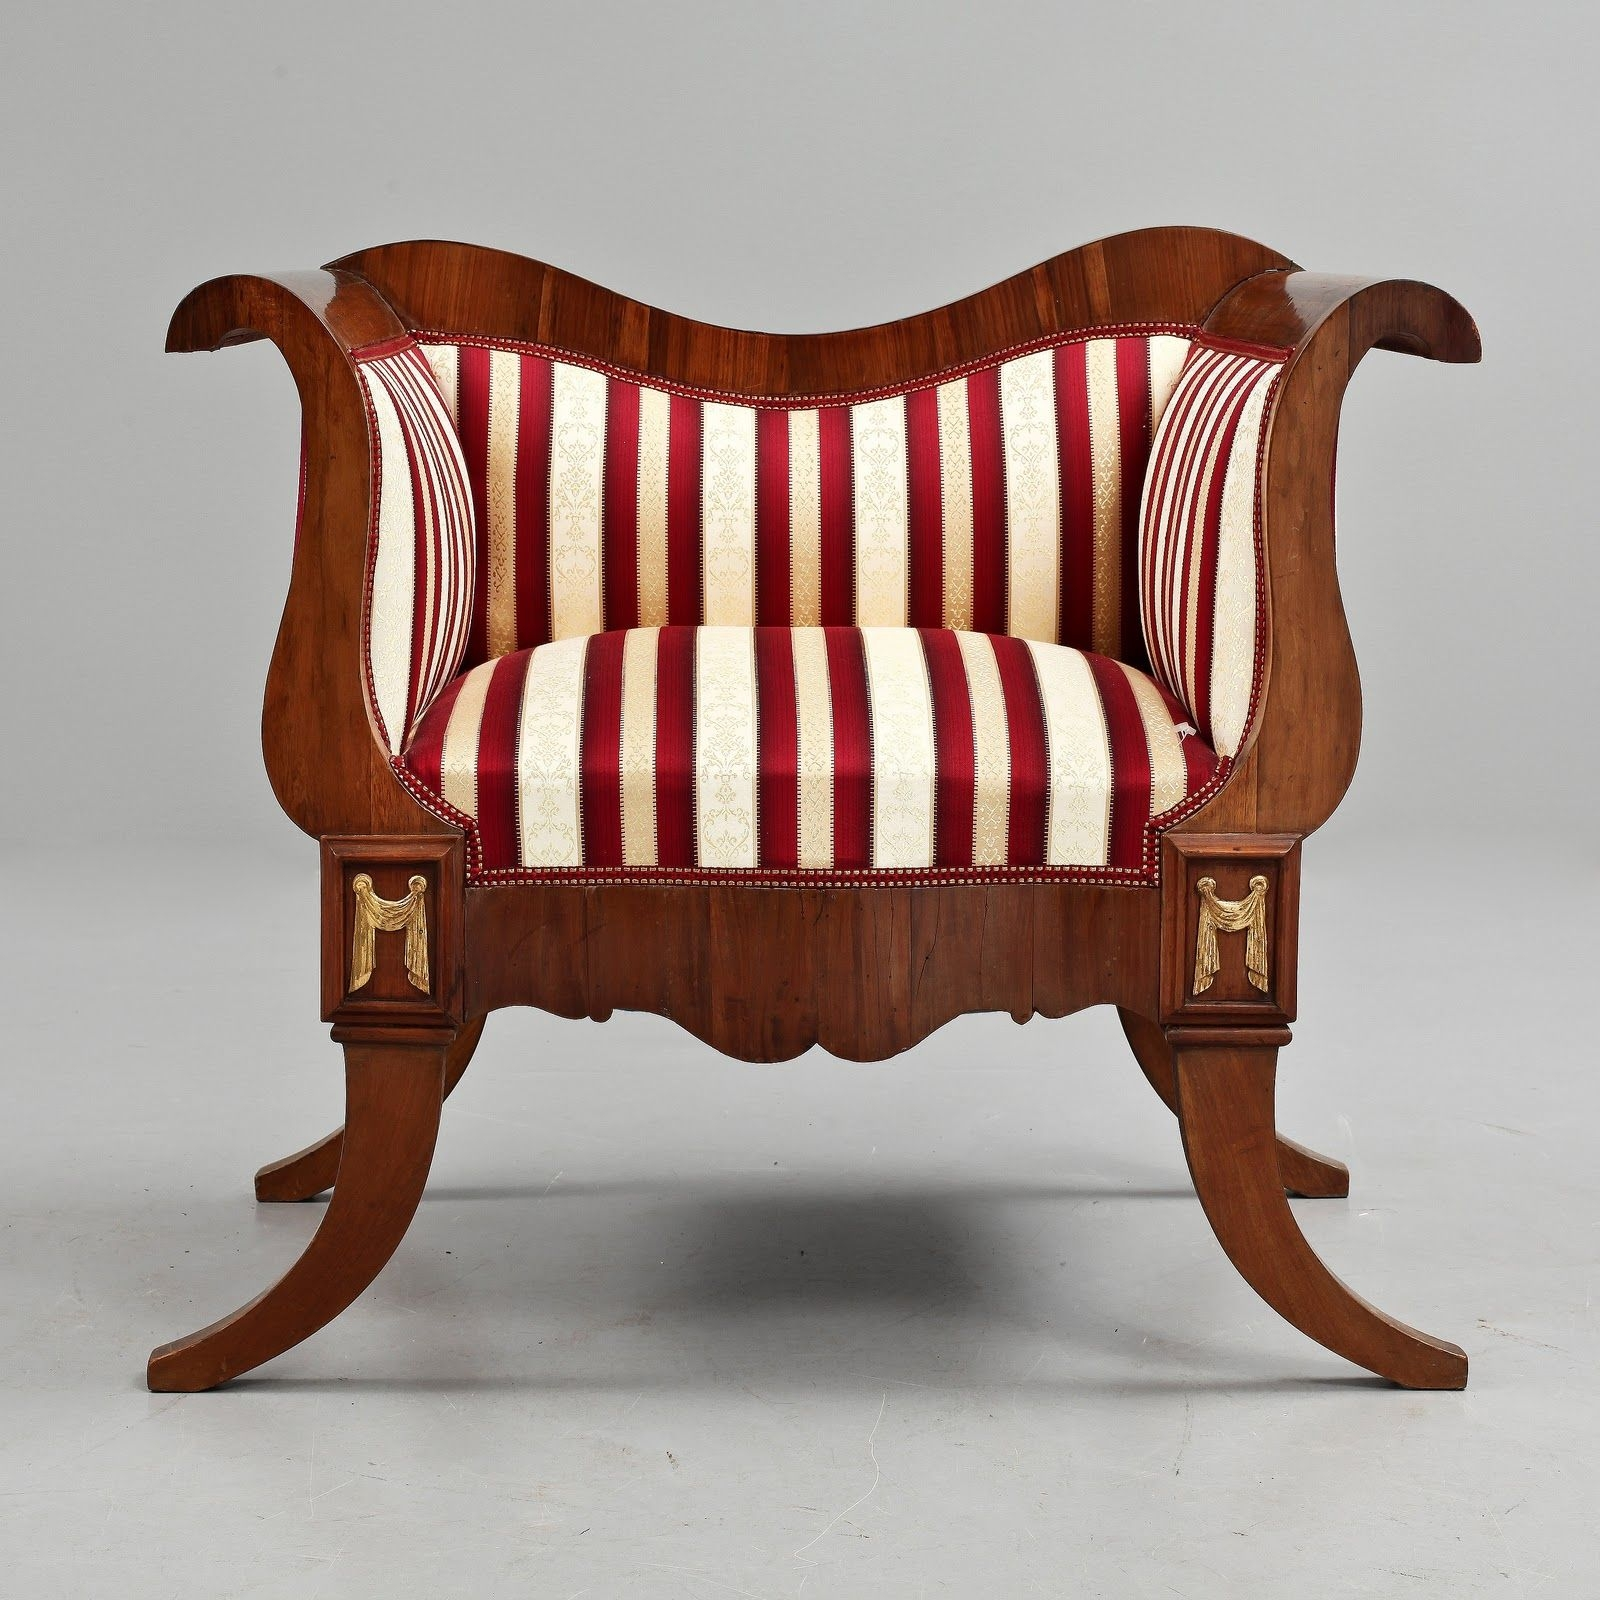 Genial Biedermeier Chair 17